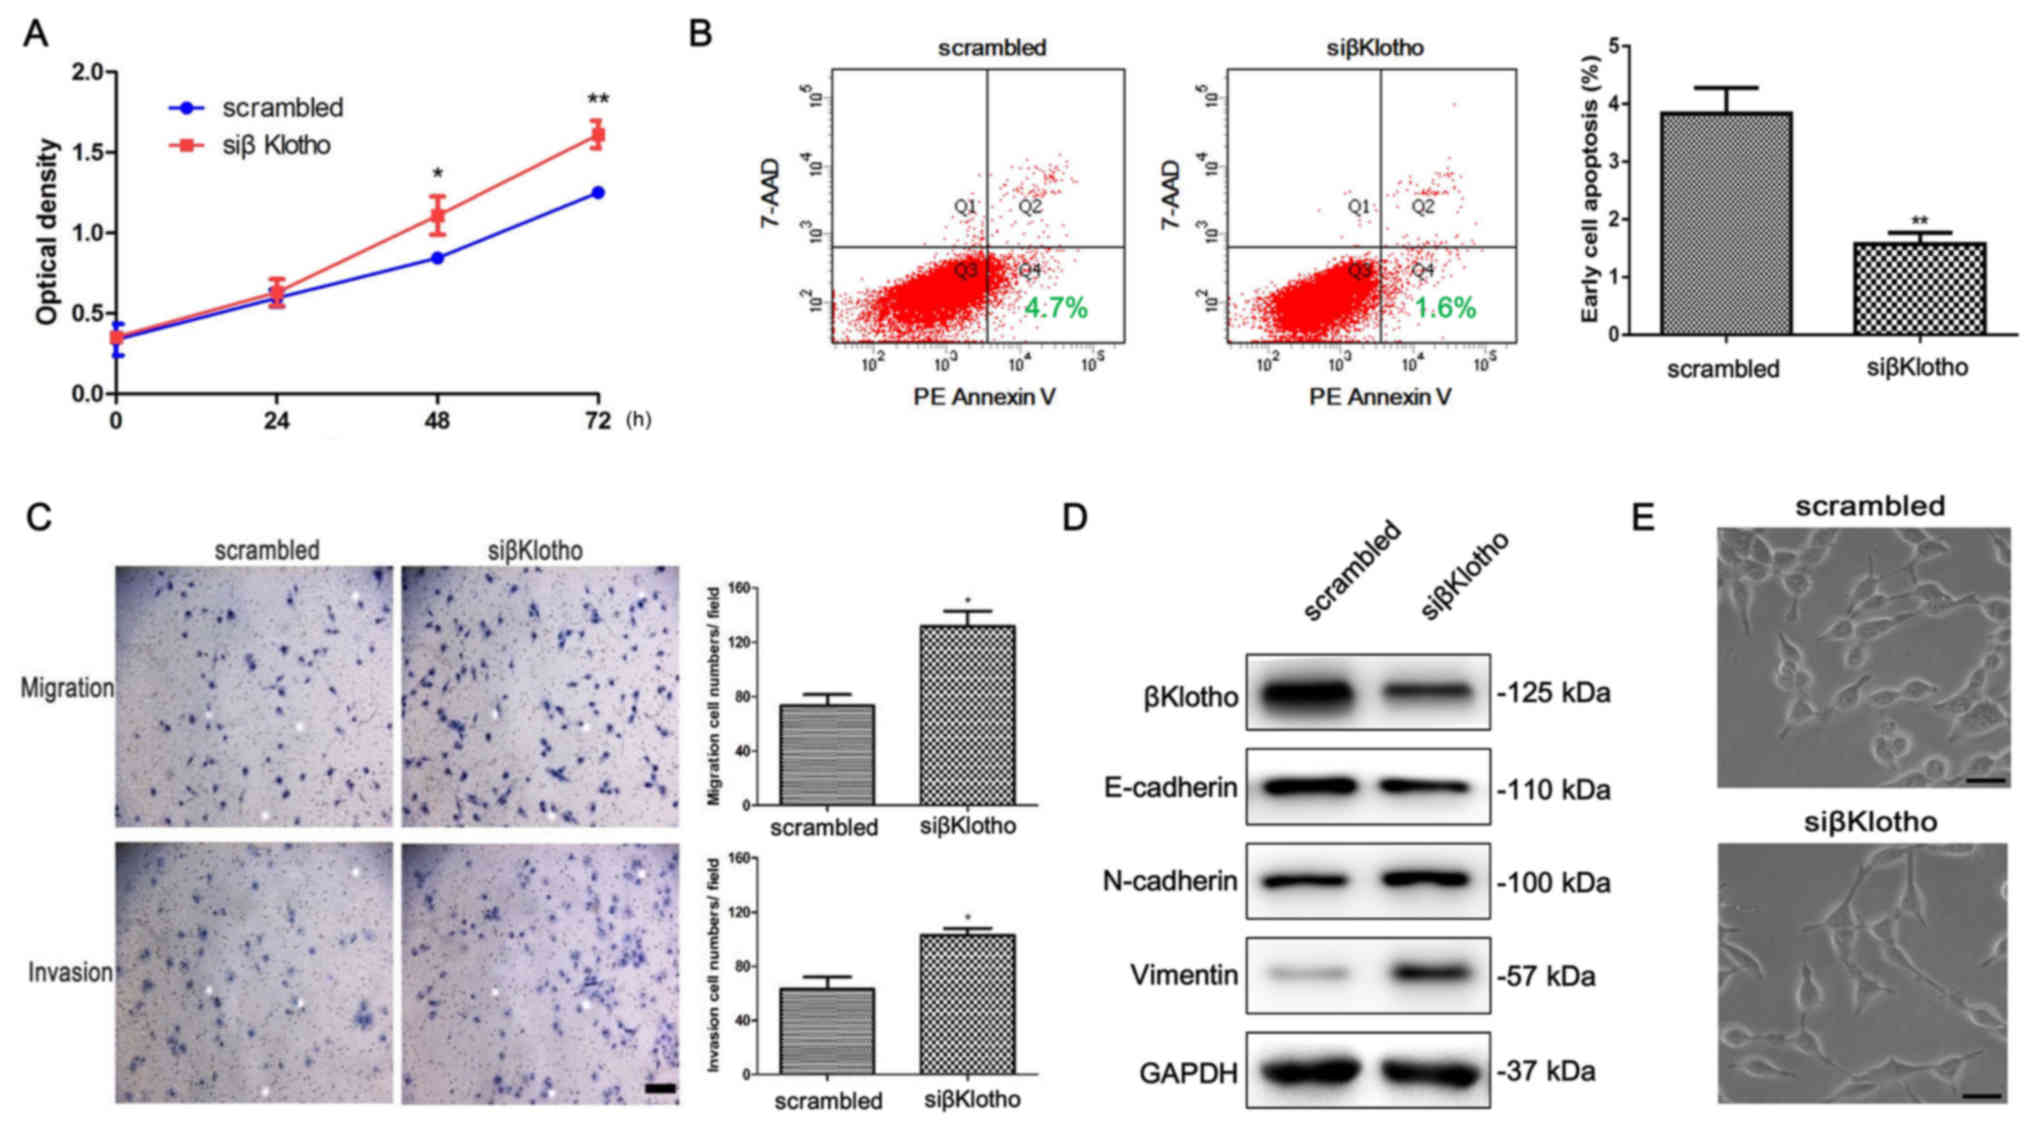 βKlotho inhibits androgen/androgen receptor‑associated